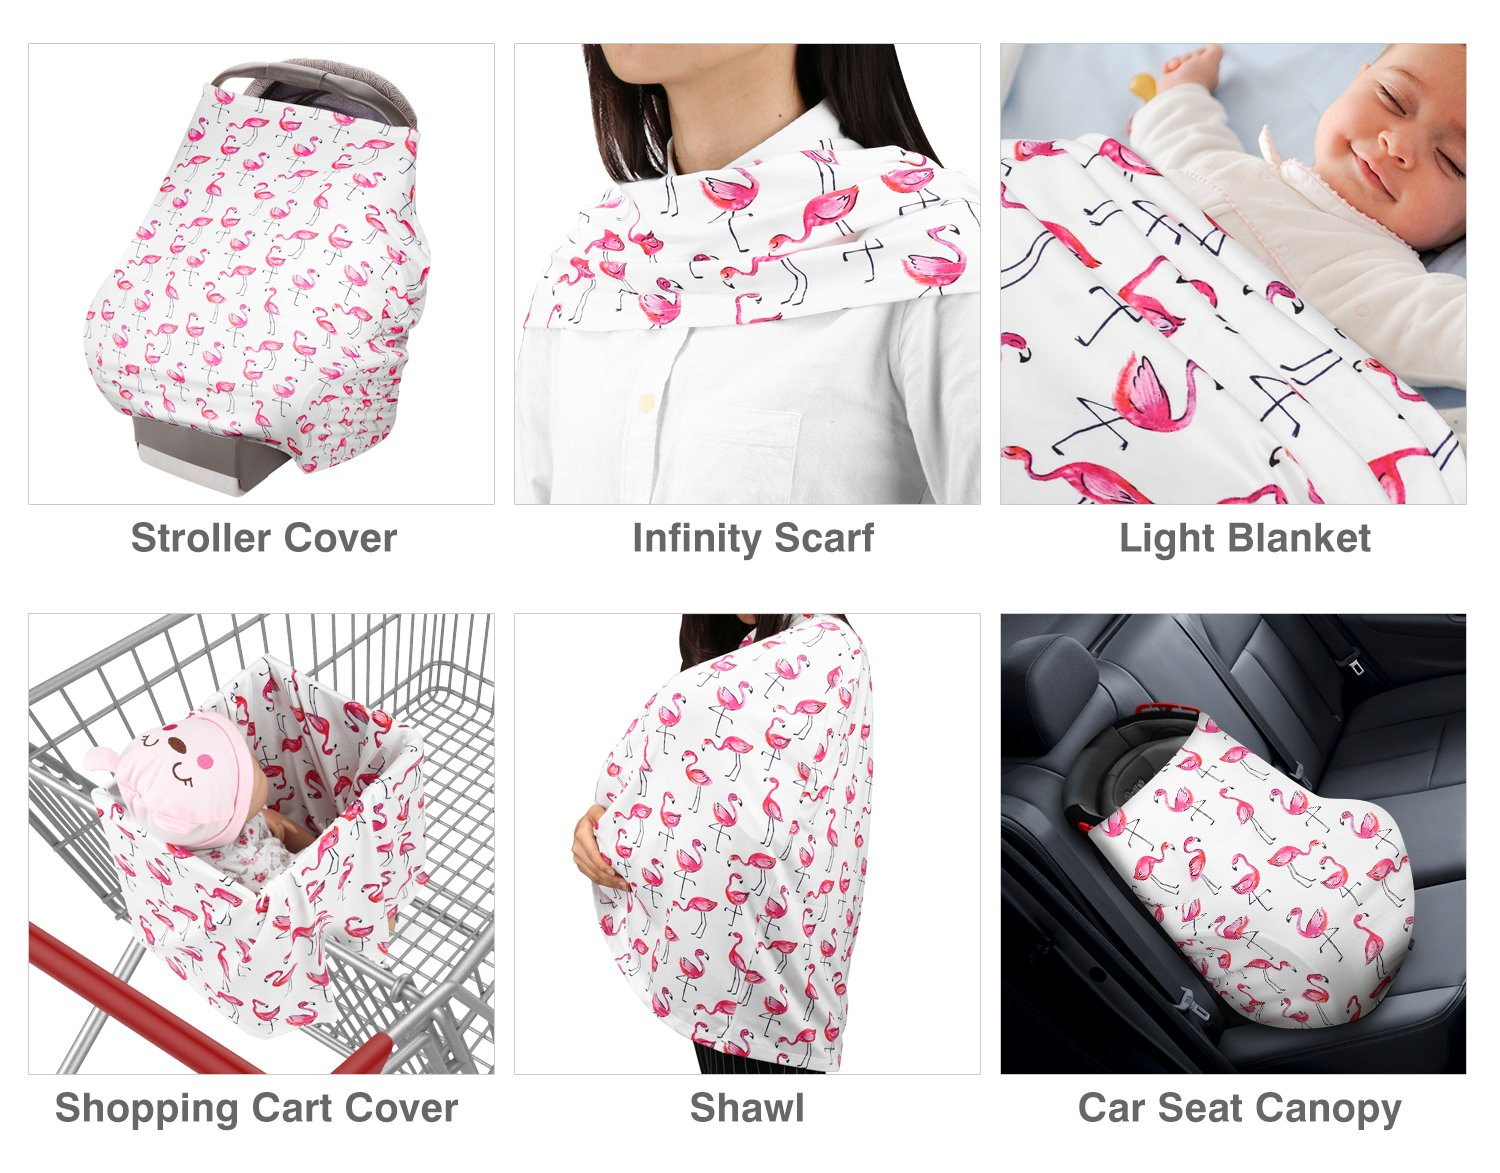 Zooawa Nursing Breastfeeding Cover Baby Car Seat Canopy Soft Cotton Mulit-Use Cover for Baby Breast Feeding Essentials Shopping Cart Cover Stroller Nursing Scarf